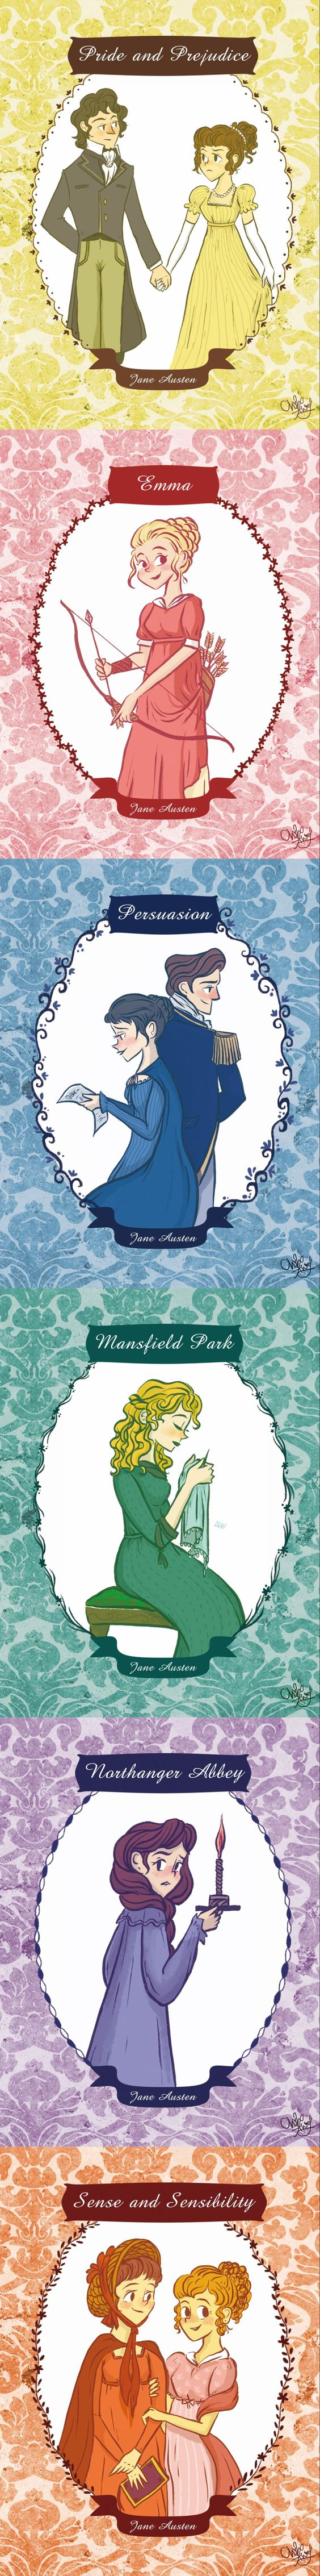 Illustrations for Jane Austen's classical novels.  By ChihAriel: